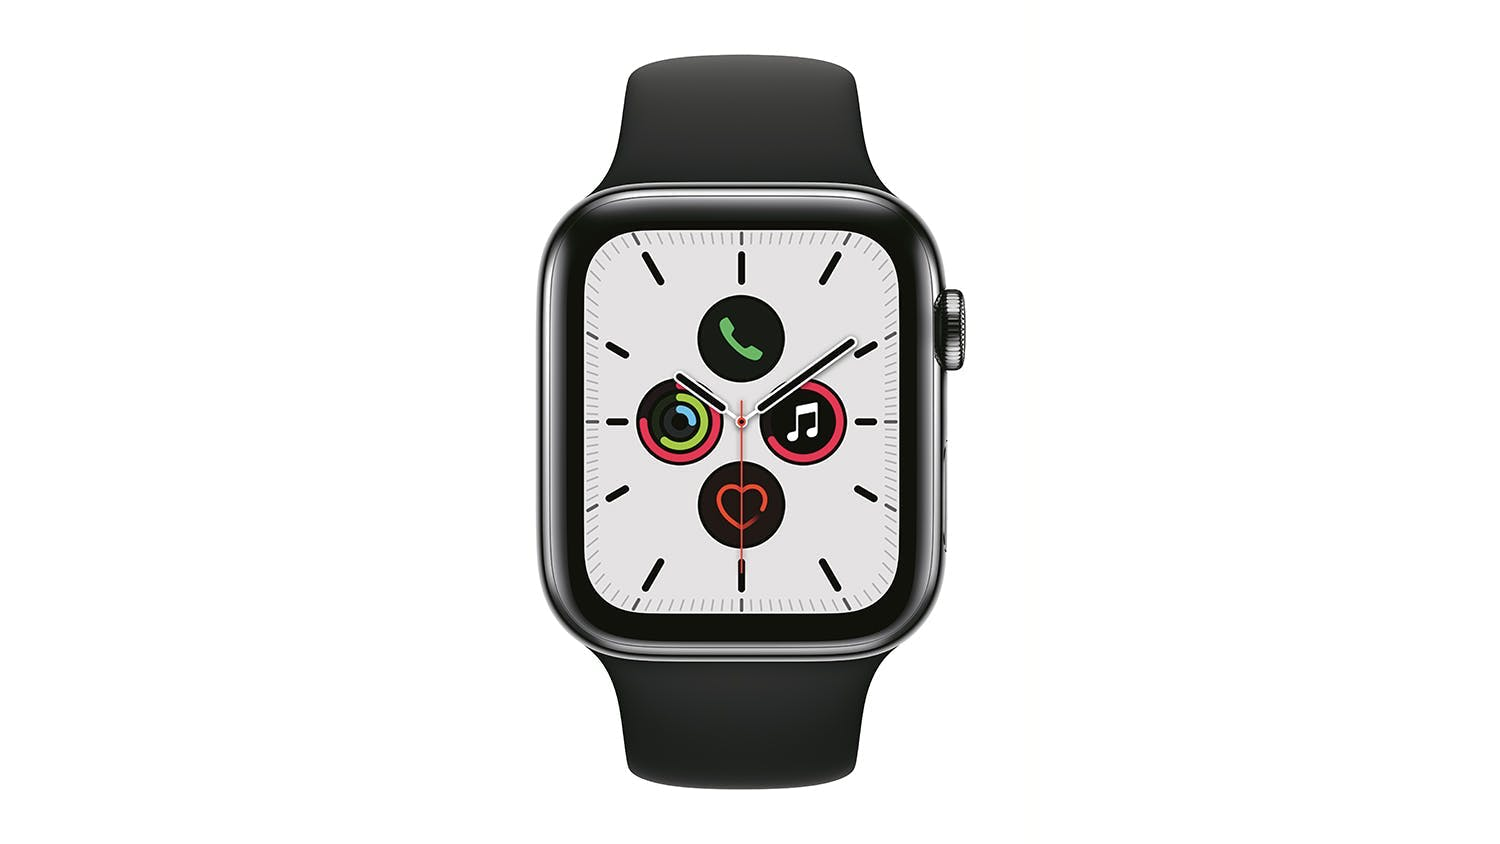 Apple Watch Series 5 (GPS+Cellular) 40mm Space Black Stainless Steel + Black Sport Band